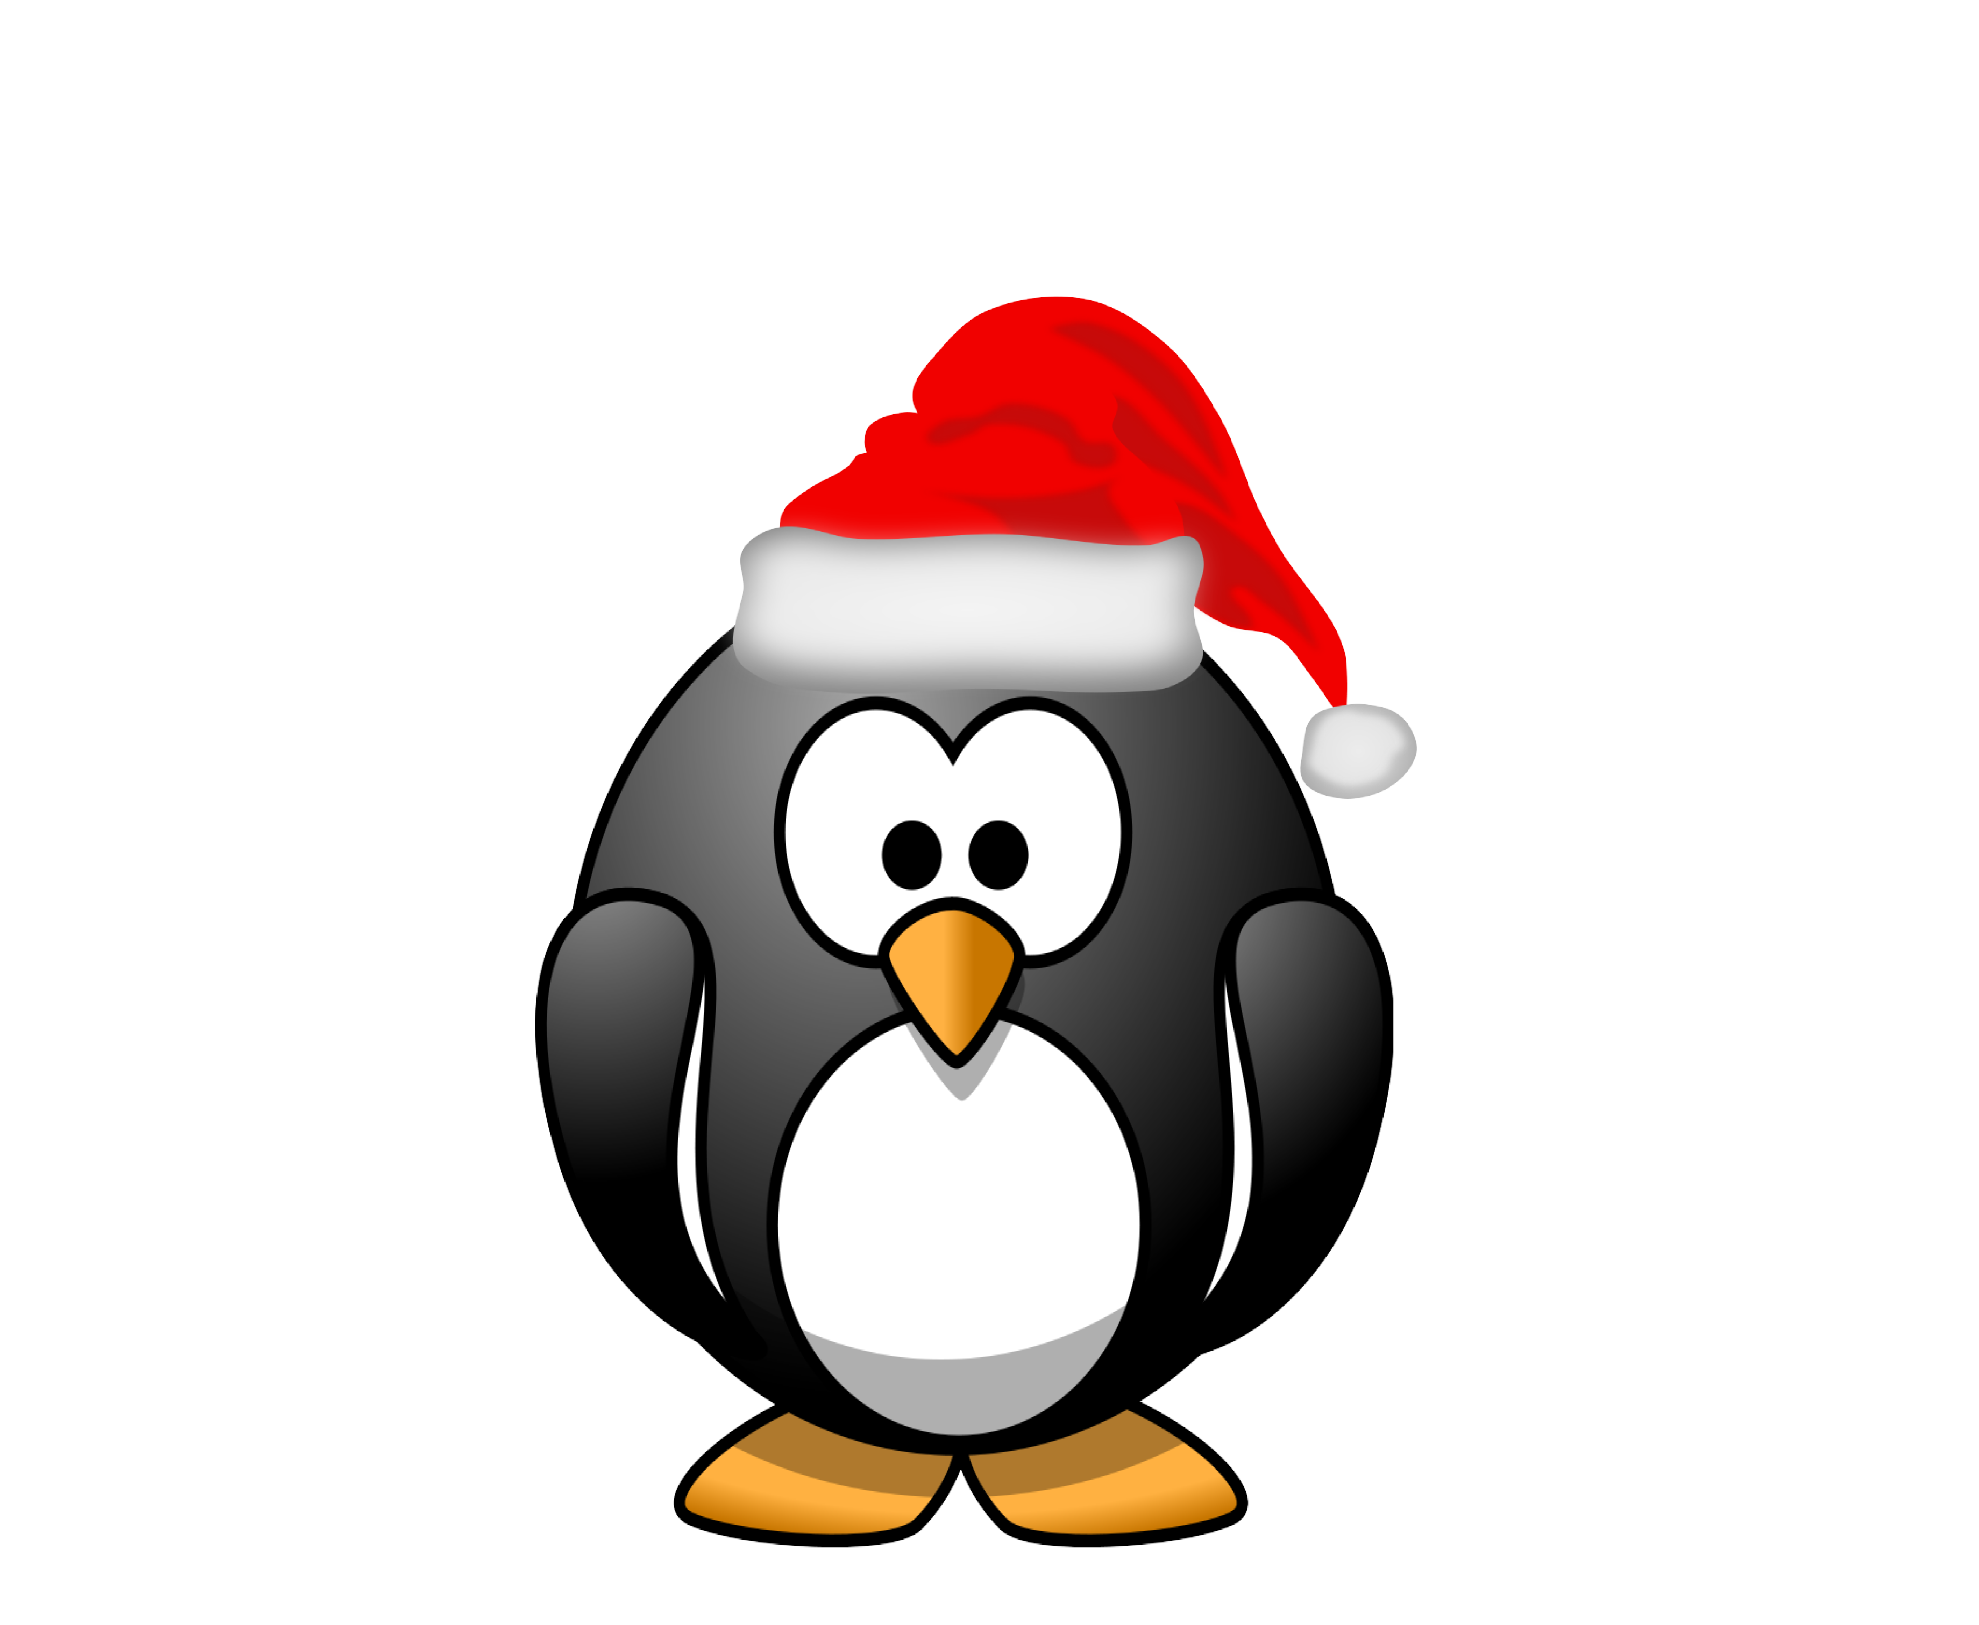 Christmas penguin clipart black and white svg download Free Christmas Penguin Clipart, Download Free Clip Art, Free Clip ... svg download